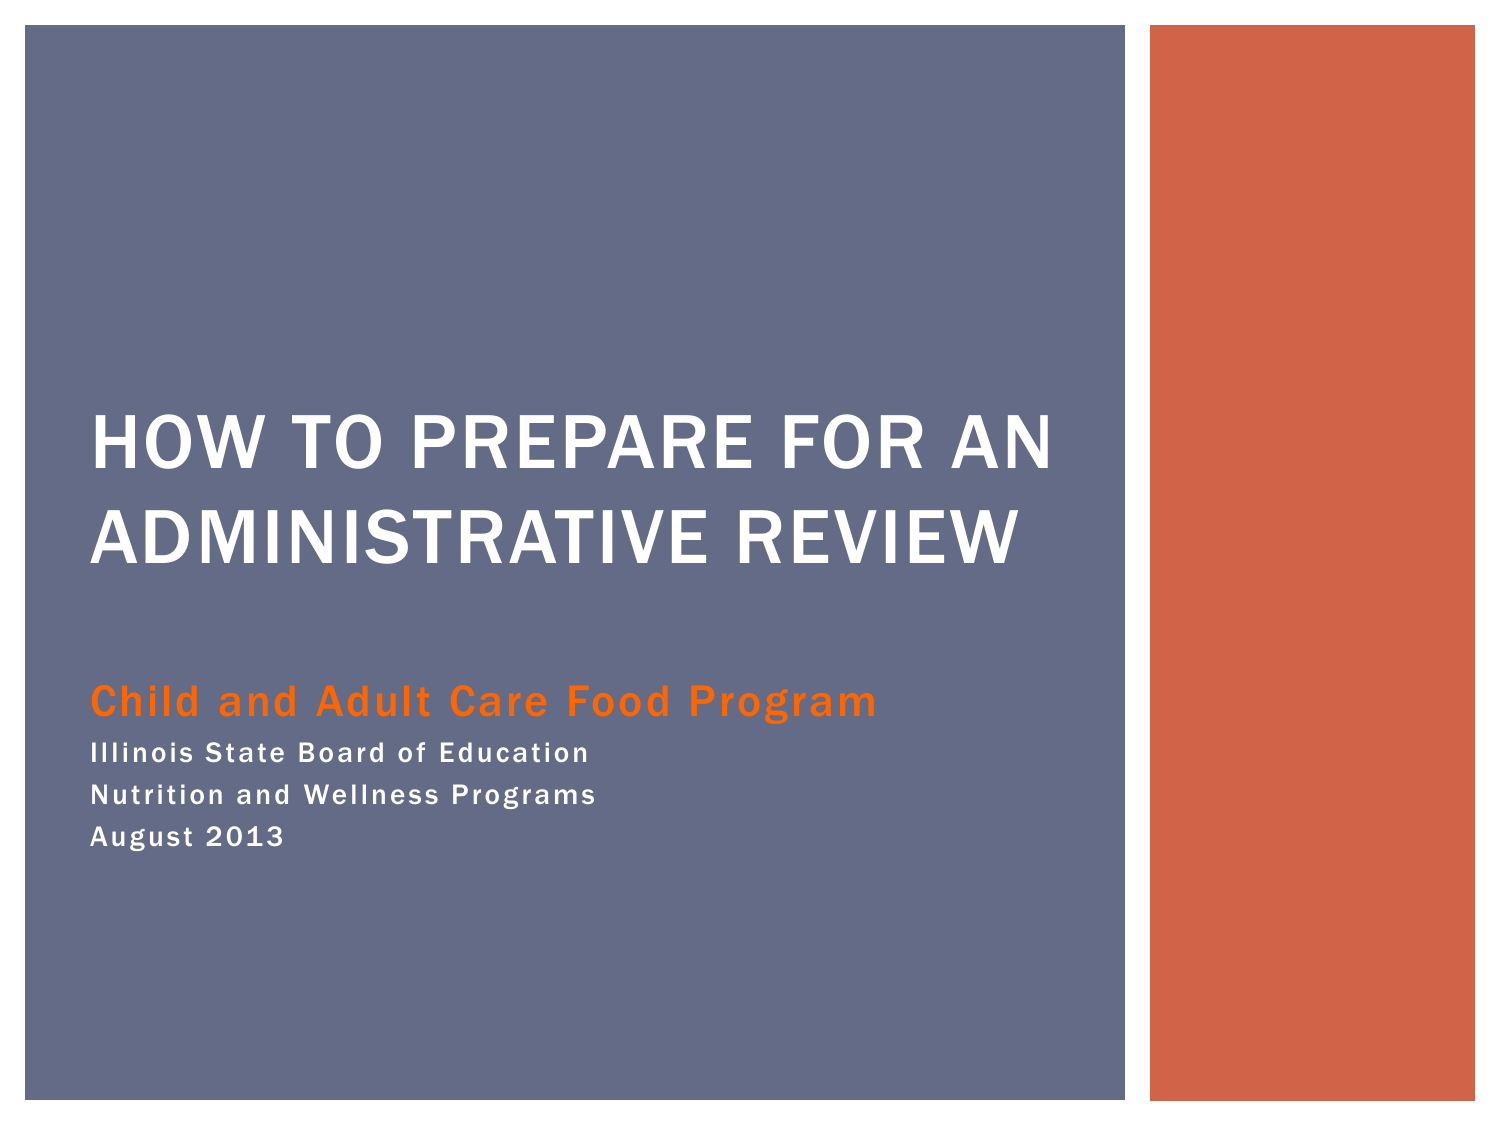 How To Prepare For An Administrative Review Powerpoint